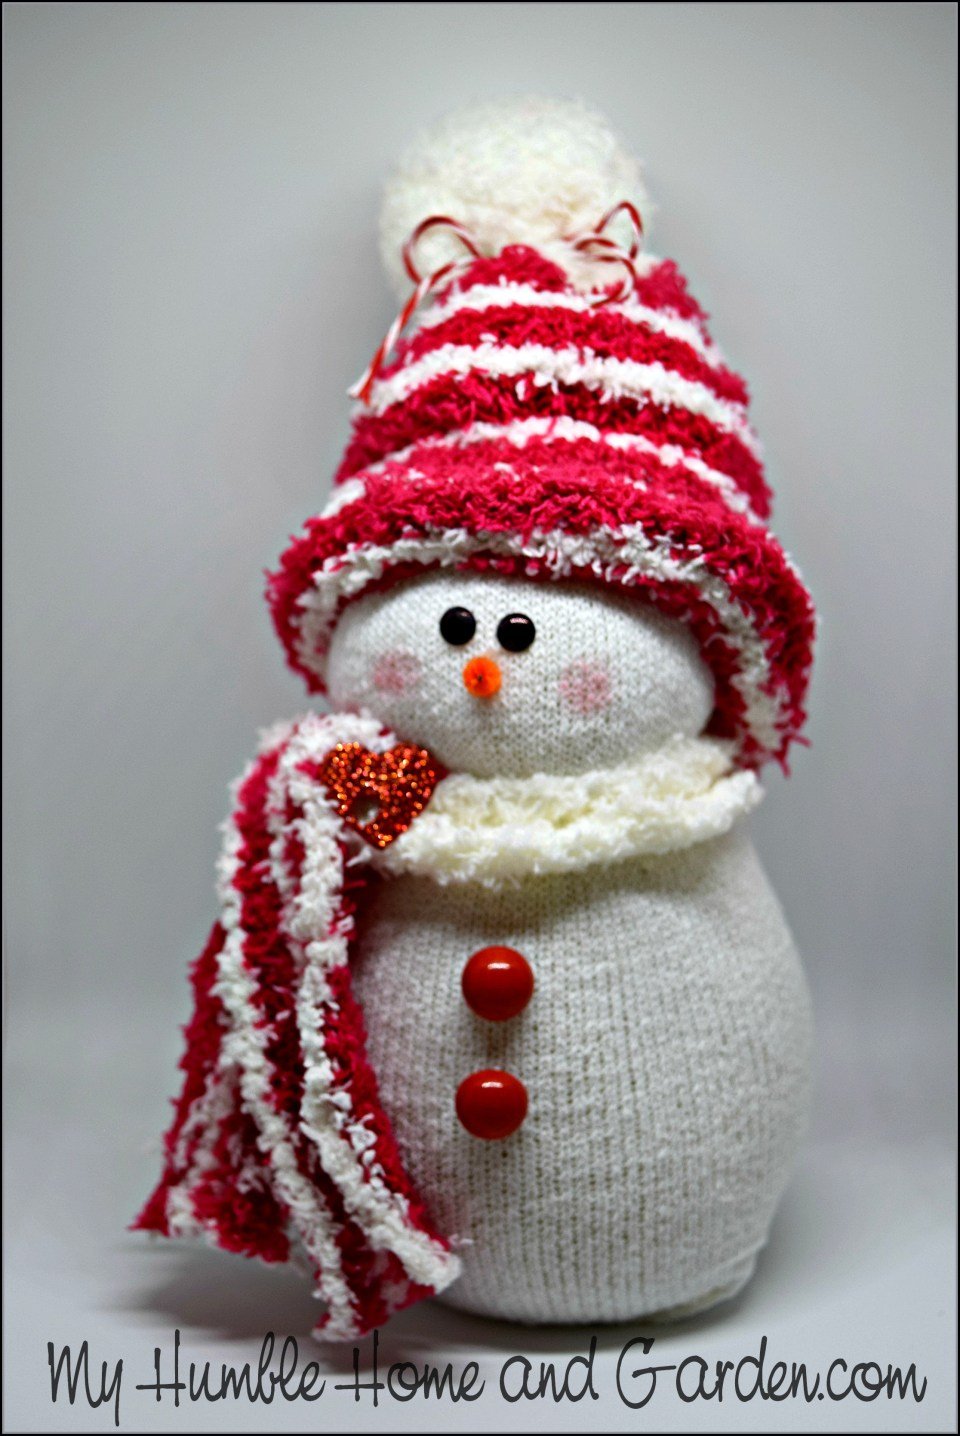 How To Make An Adorable Sock Snowman!